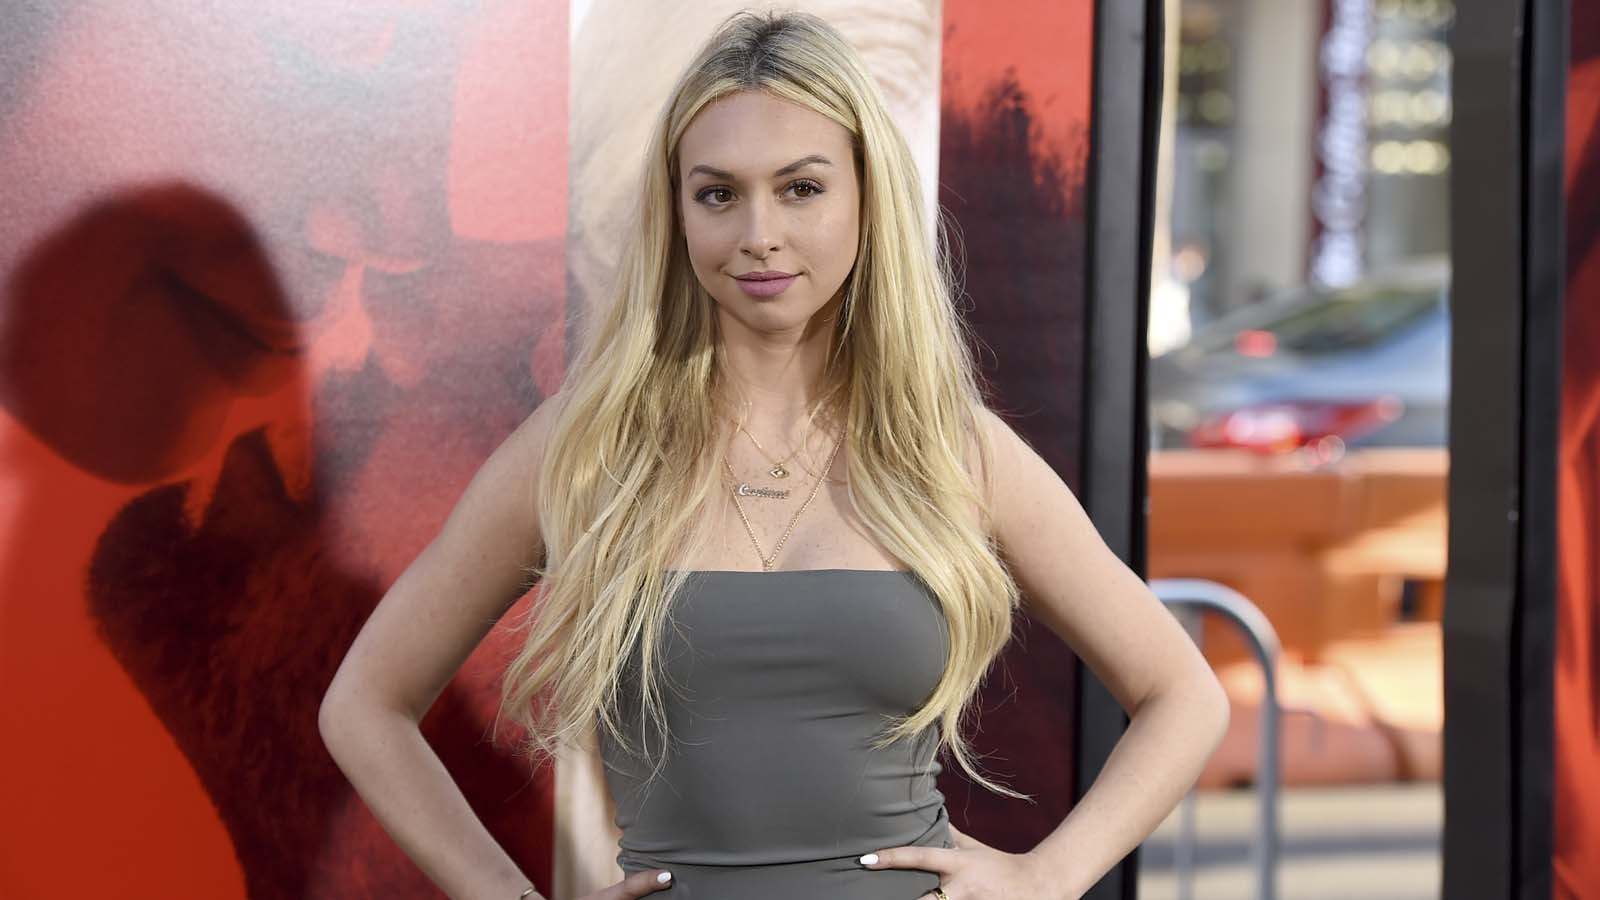 How old is corinne from the bachelor